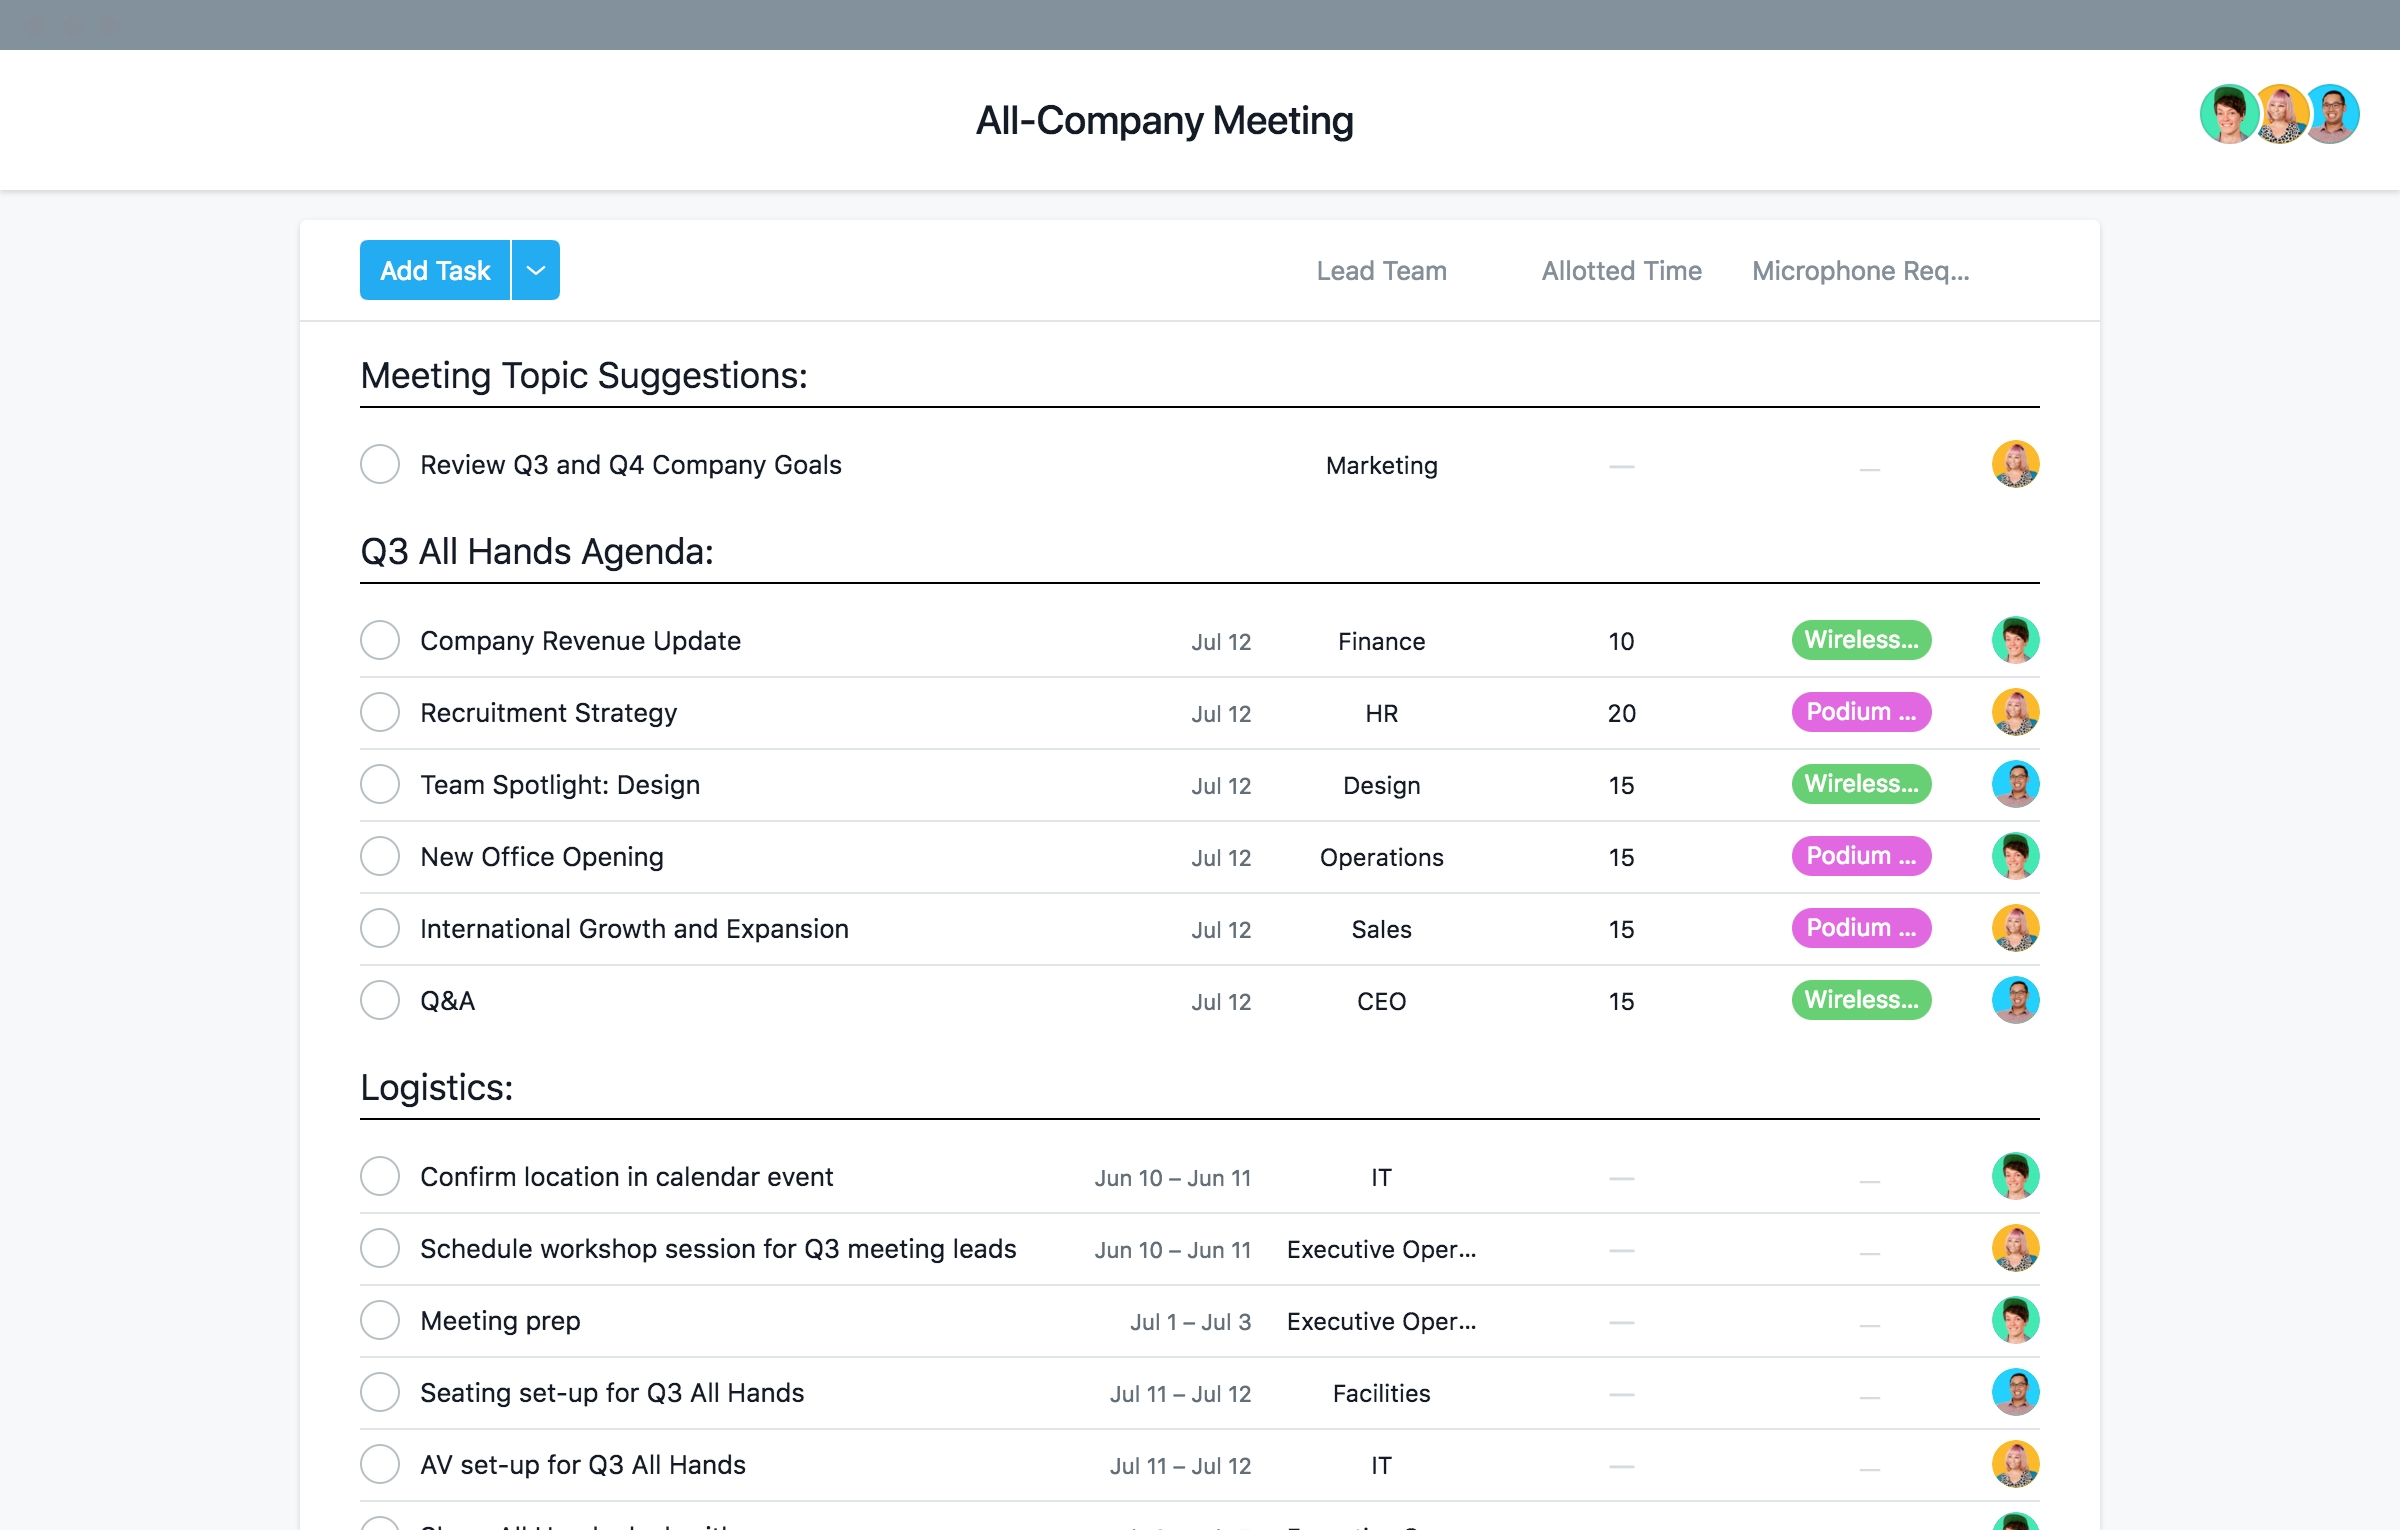 Human Resources Project Templates, Checklists, And More · Asana